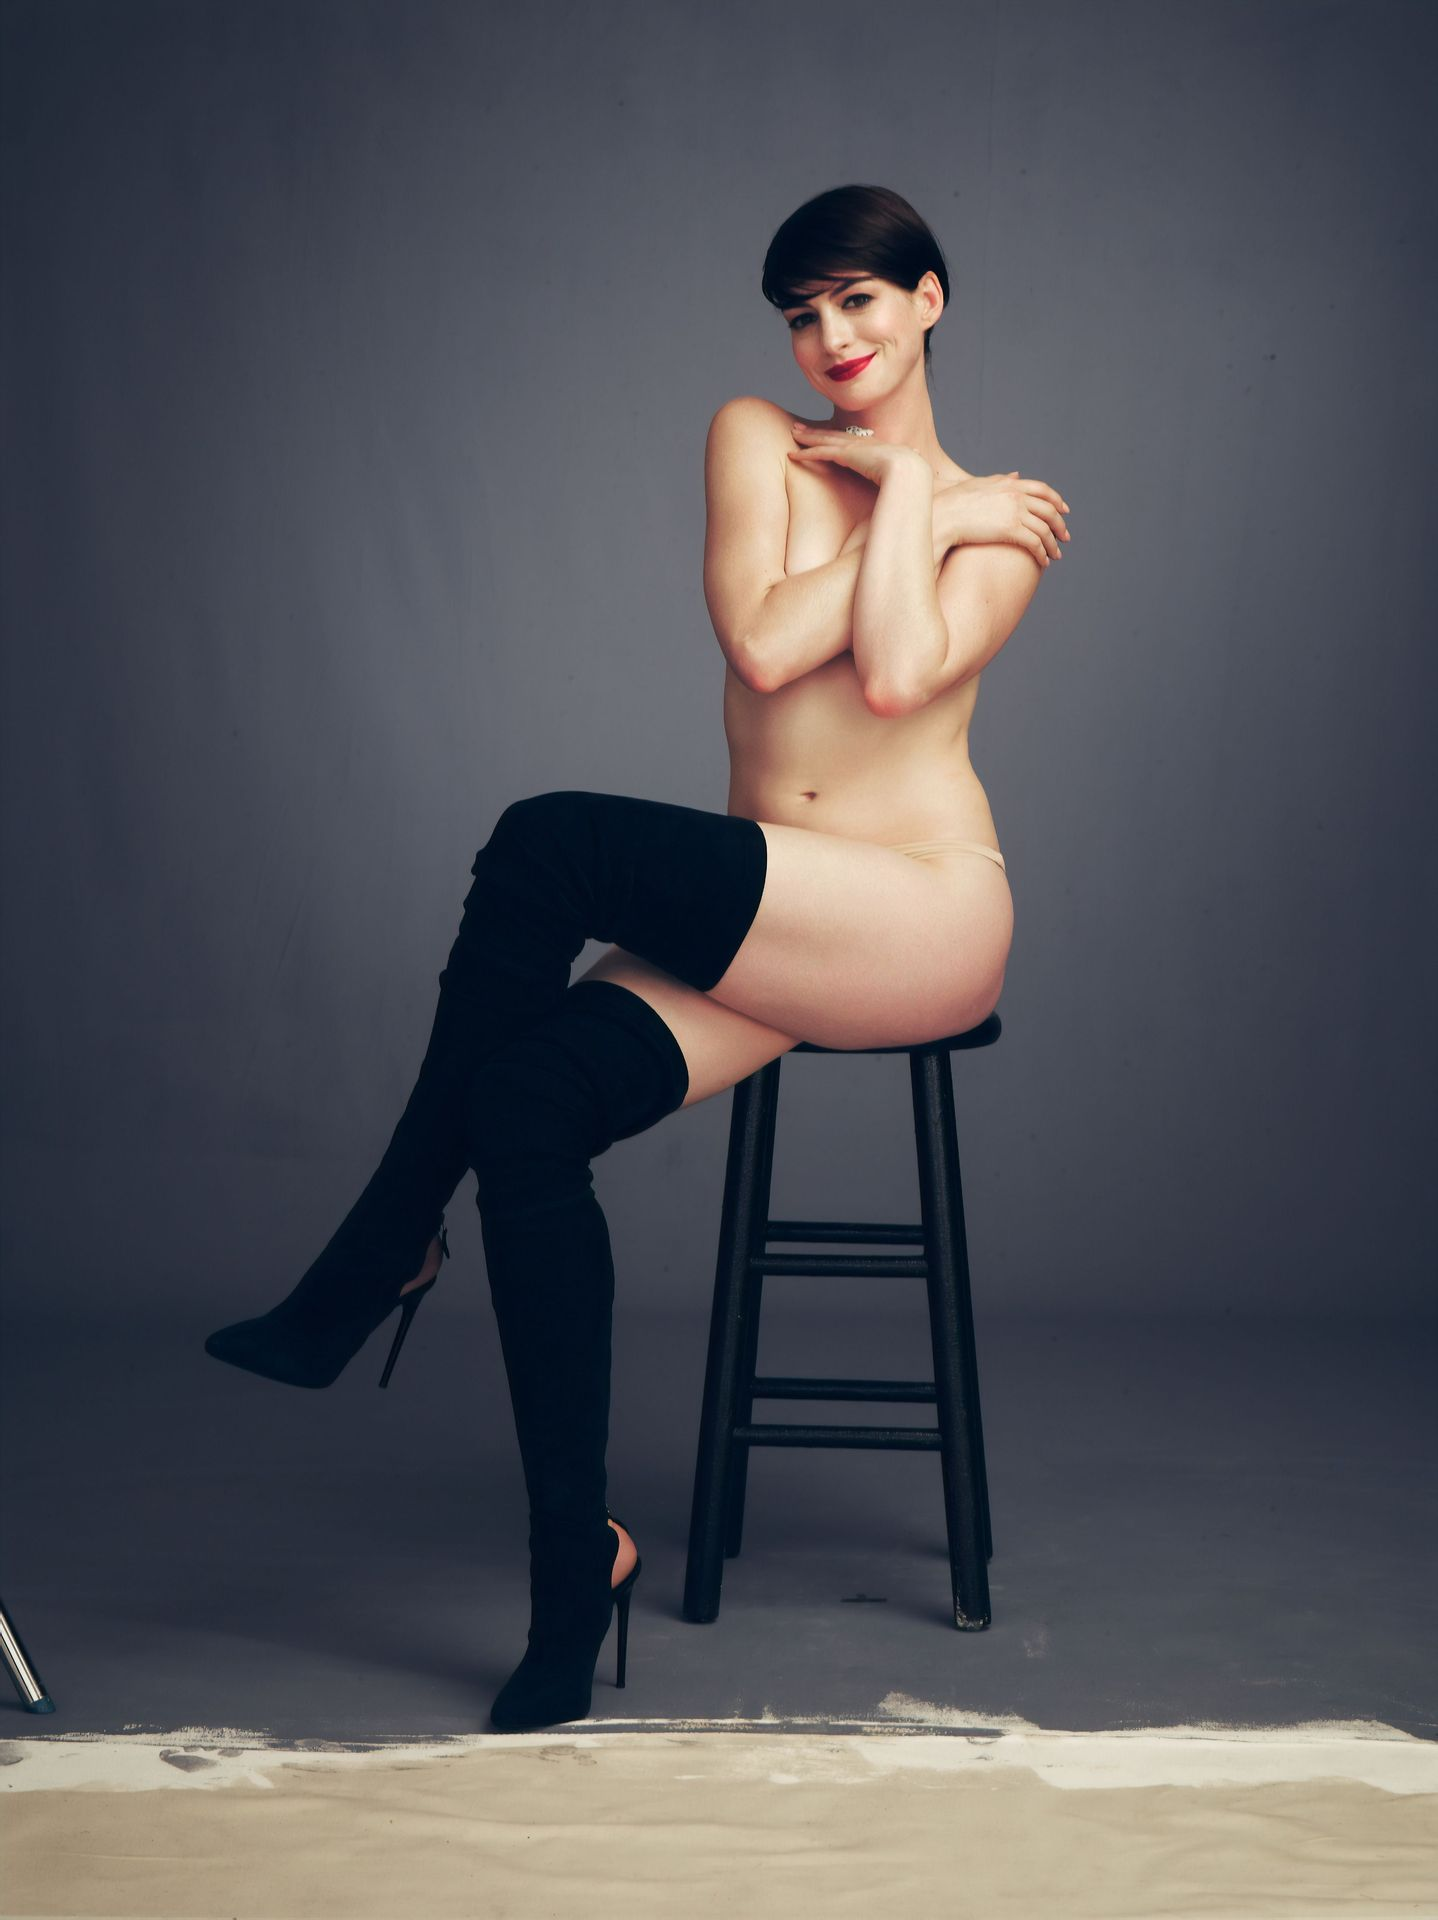 0409122627106_10_Anne-Hathaway-Nude-Sexy-TheFappeningBlog.com-10.jpg